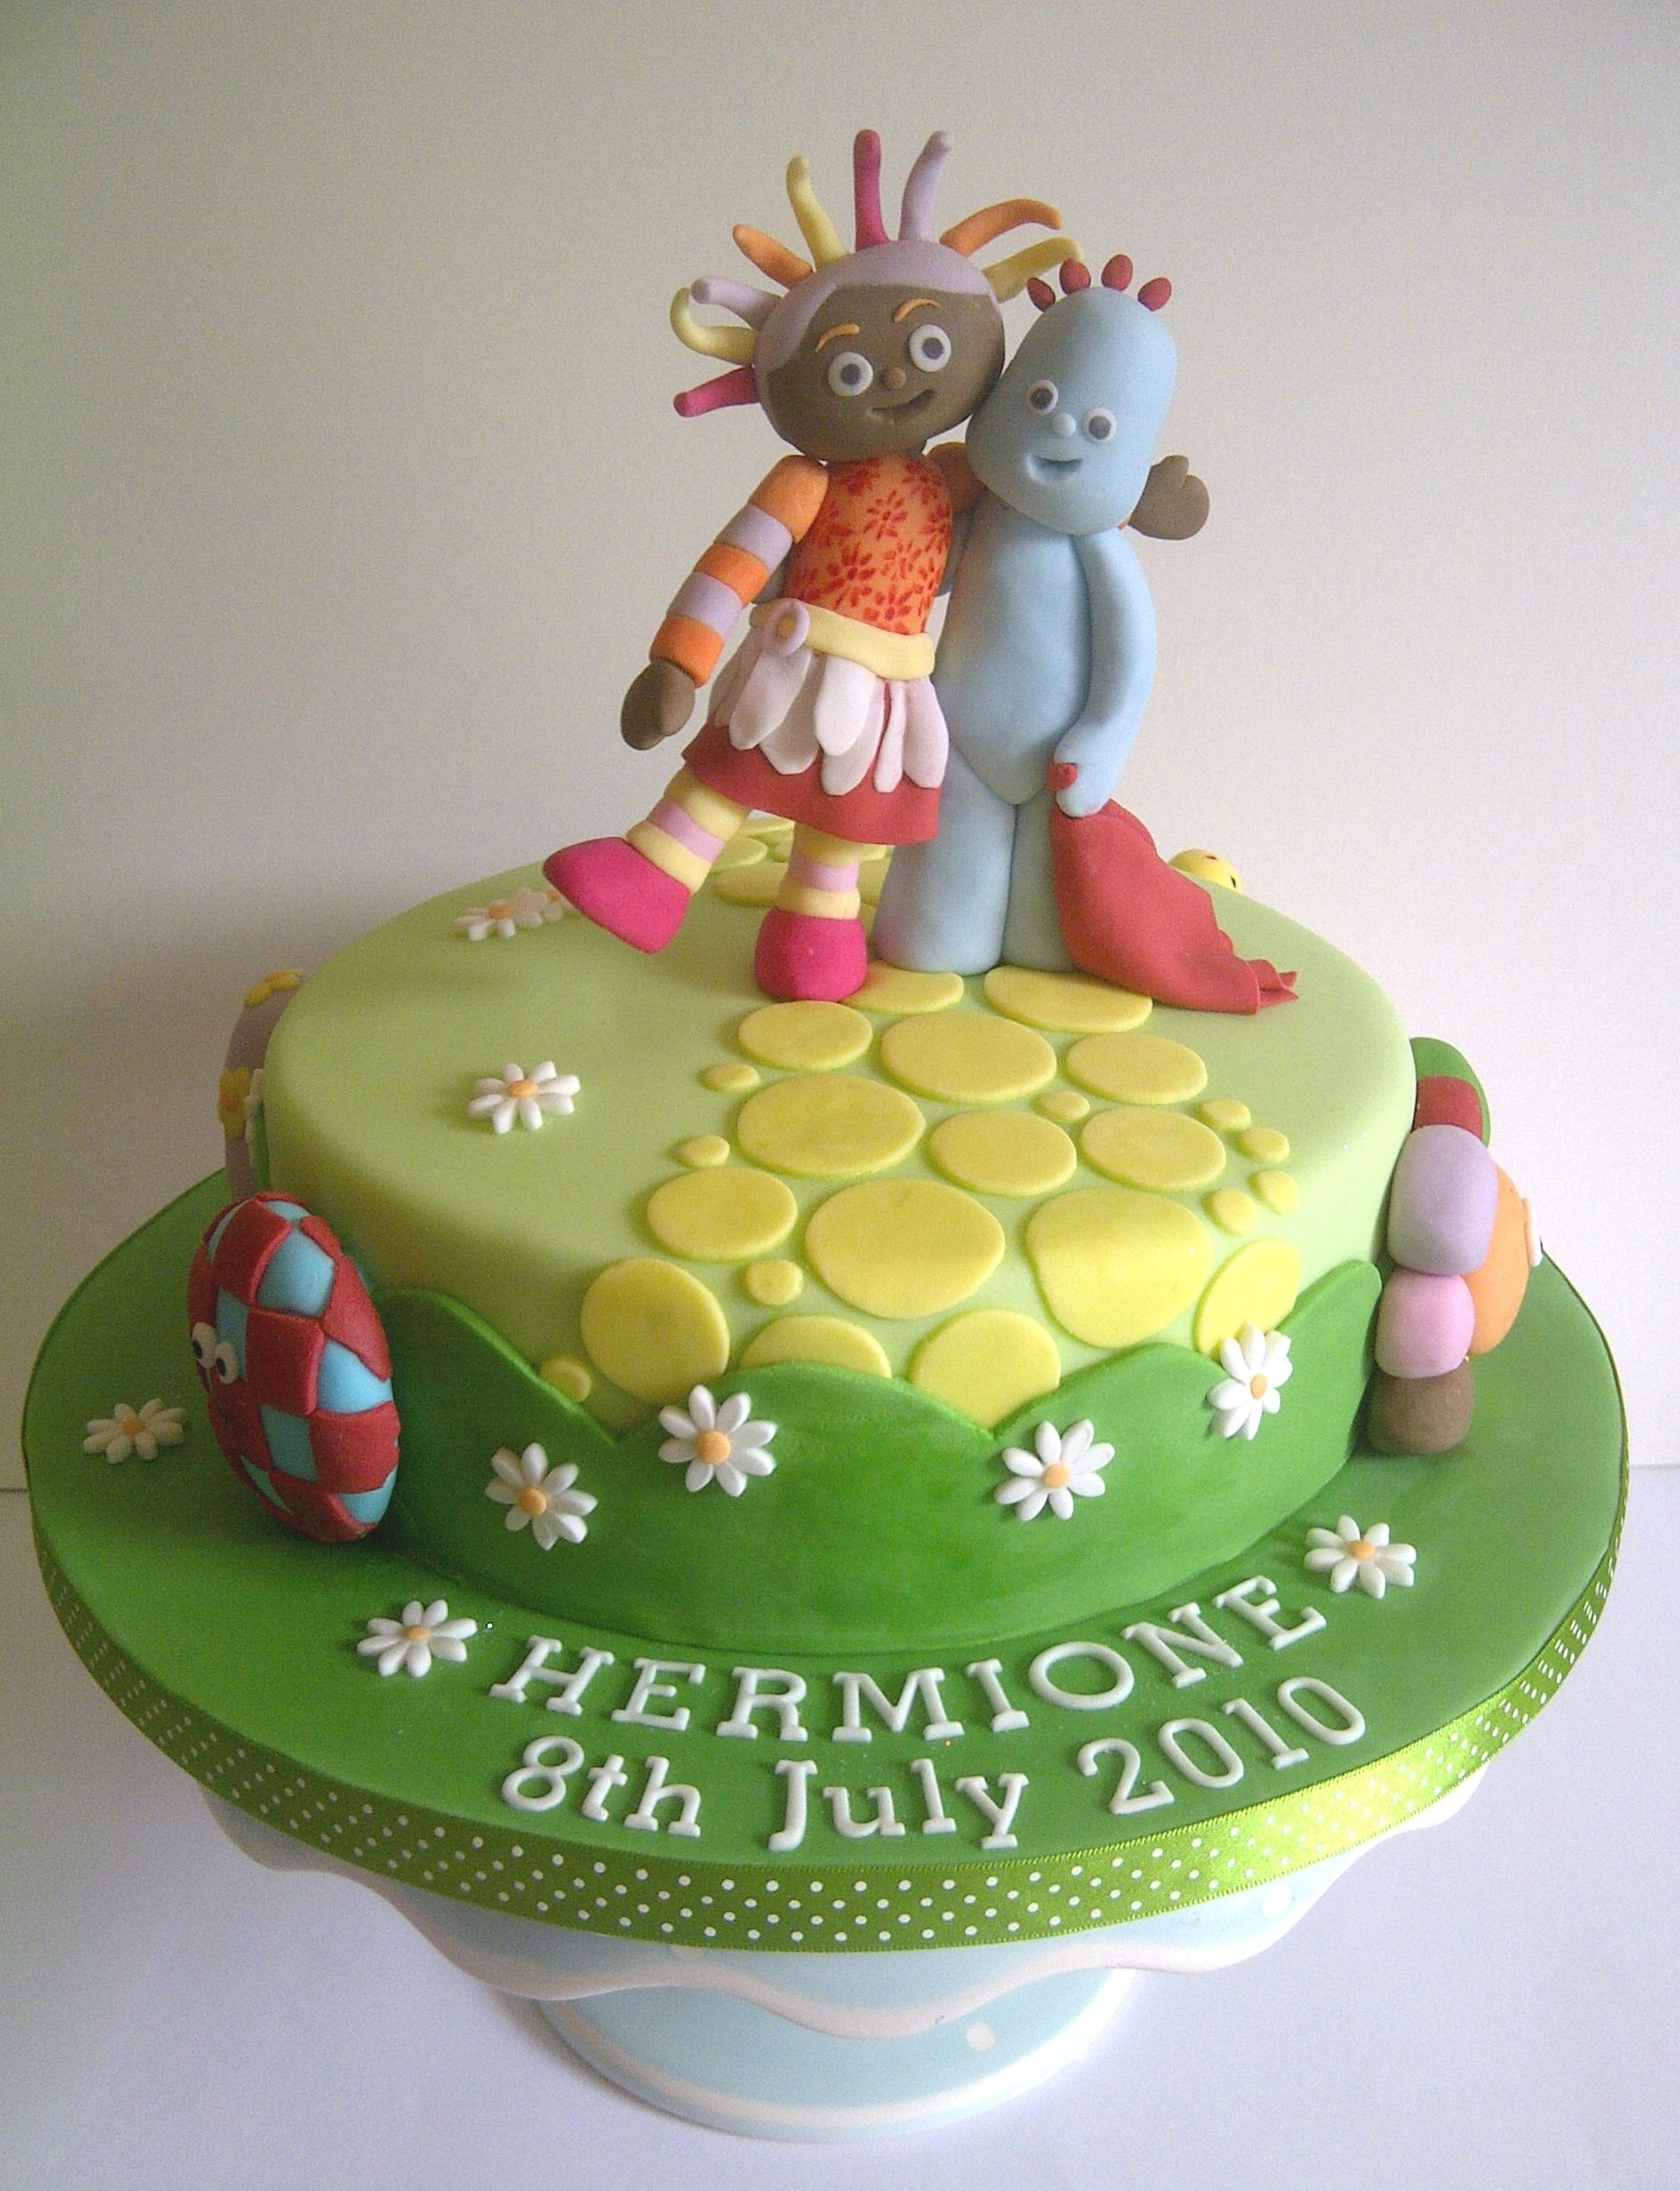 In The Night Garden Cake With Iggle Piggle Upsy Daisy And HaaHoos By CakeyCake